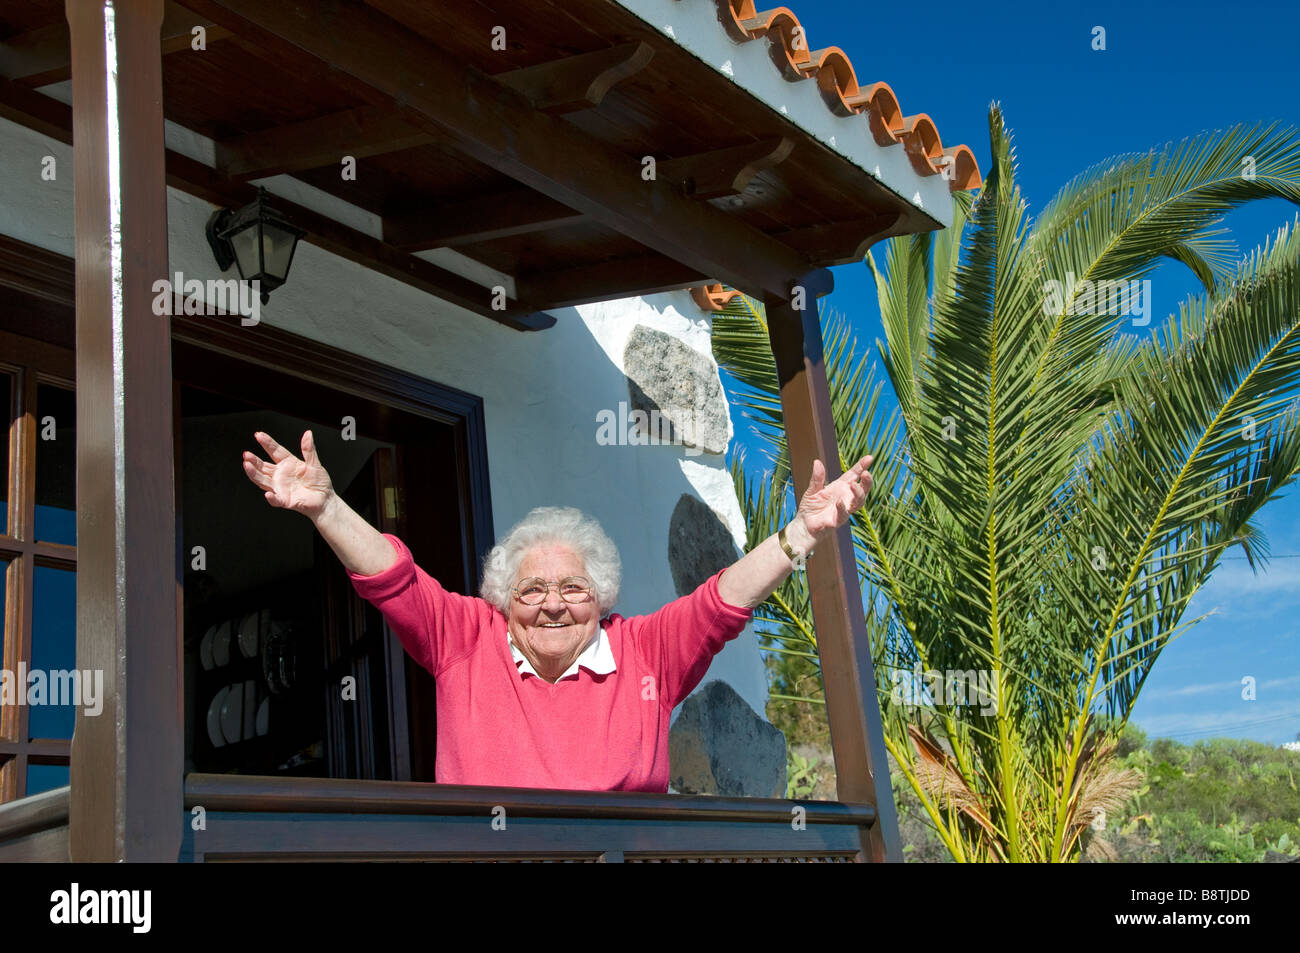 Happy elderly lady with vitality stretches out her arms enjoying a holiday visit to her sunny vacation holiday villa - Stock Image